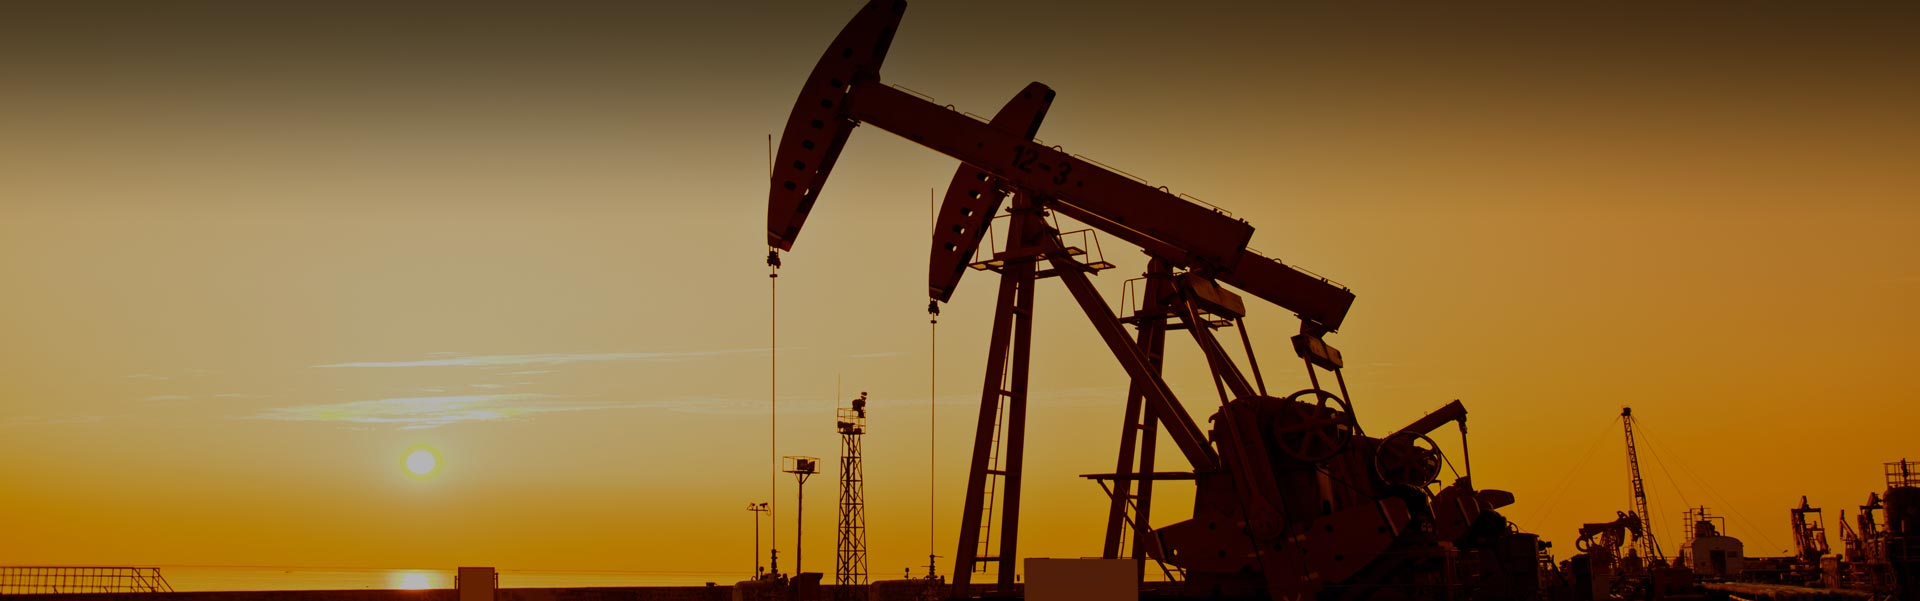 Oil and Gas Simulation Software – AnyLogic Simulation Software